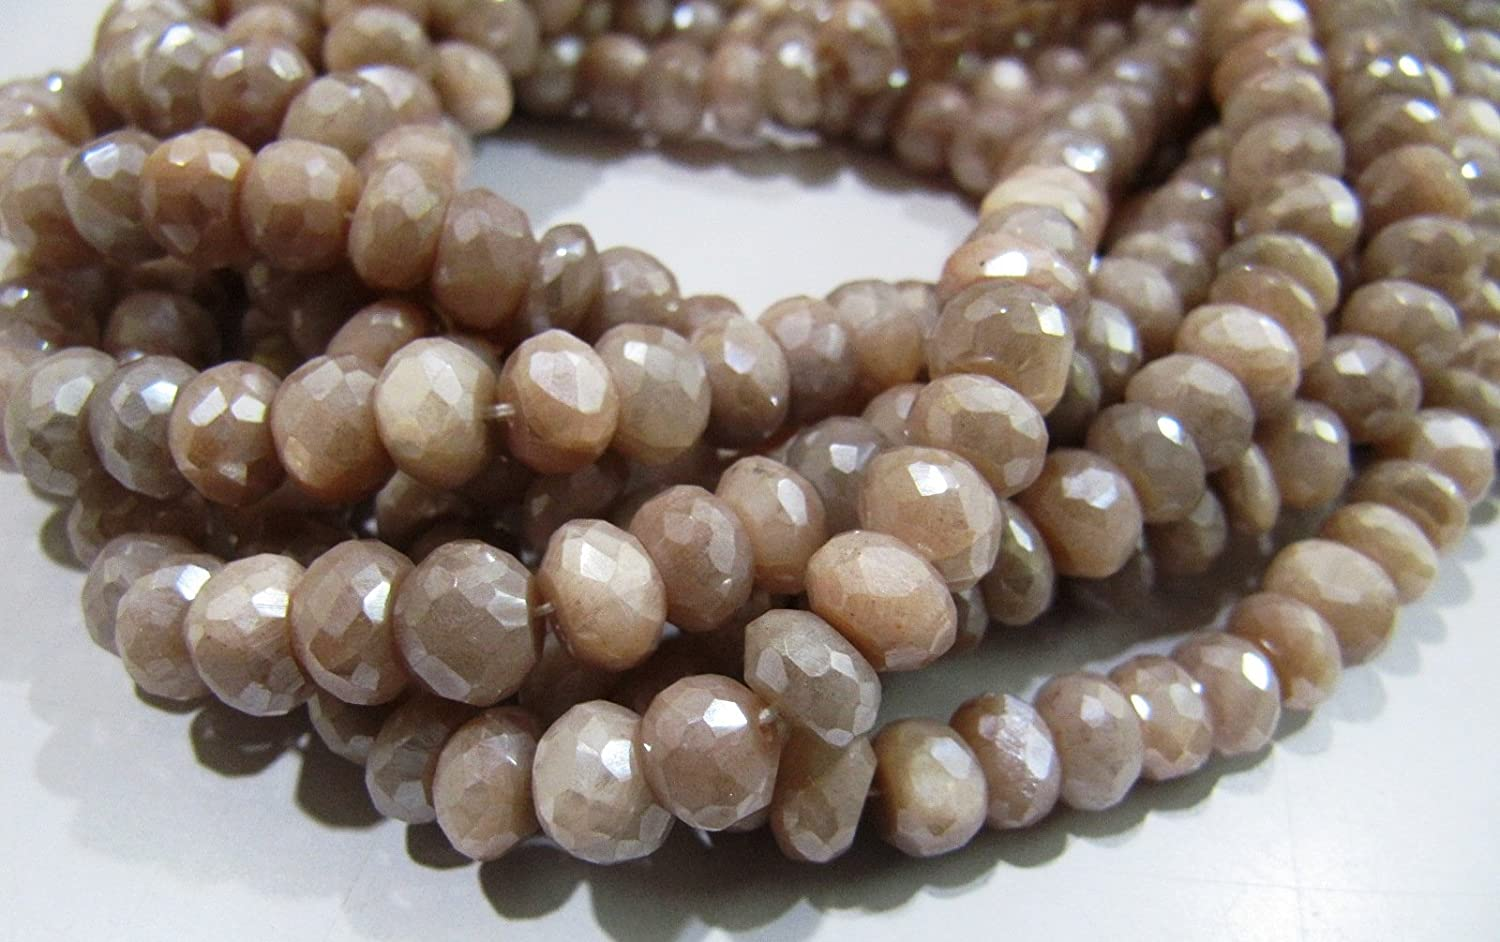 moonstone faceted 6mm-7mm AAA Peach moonstone faceted rondelle loose gemstone beads 8inch strand